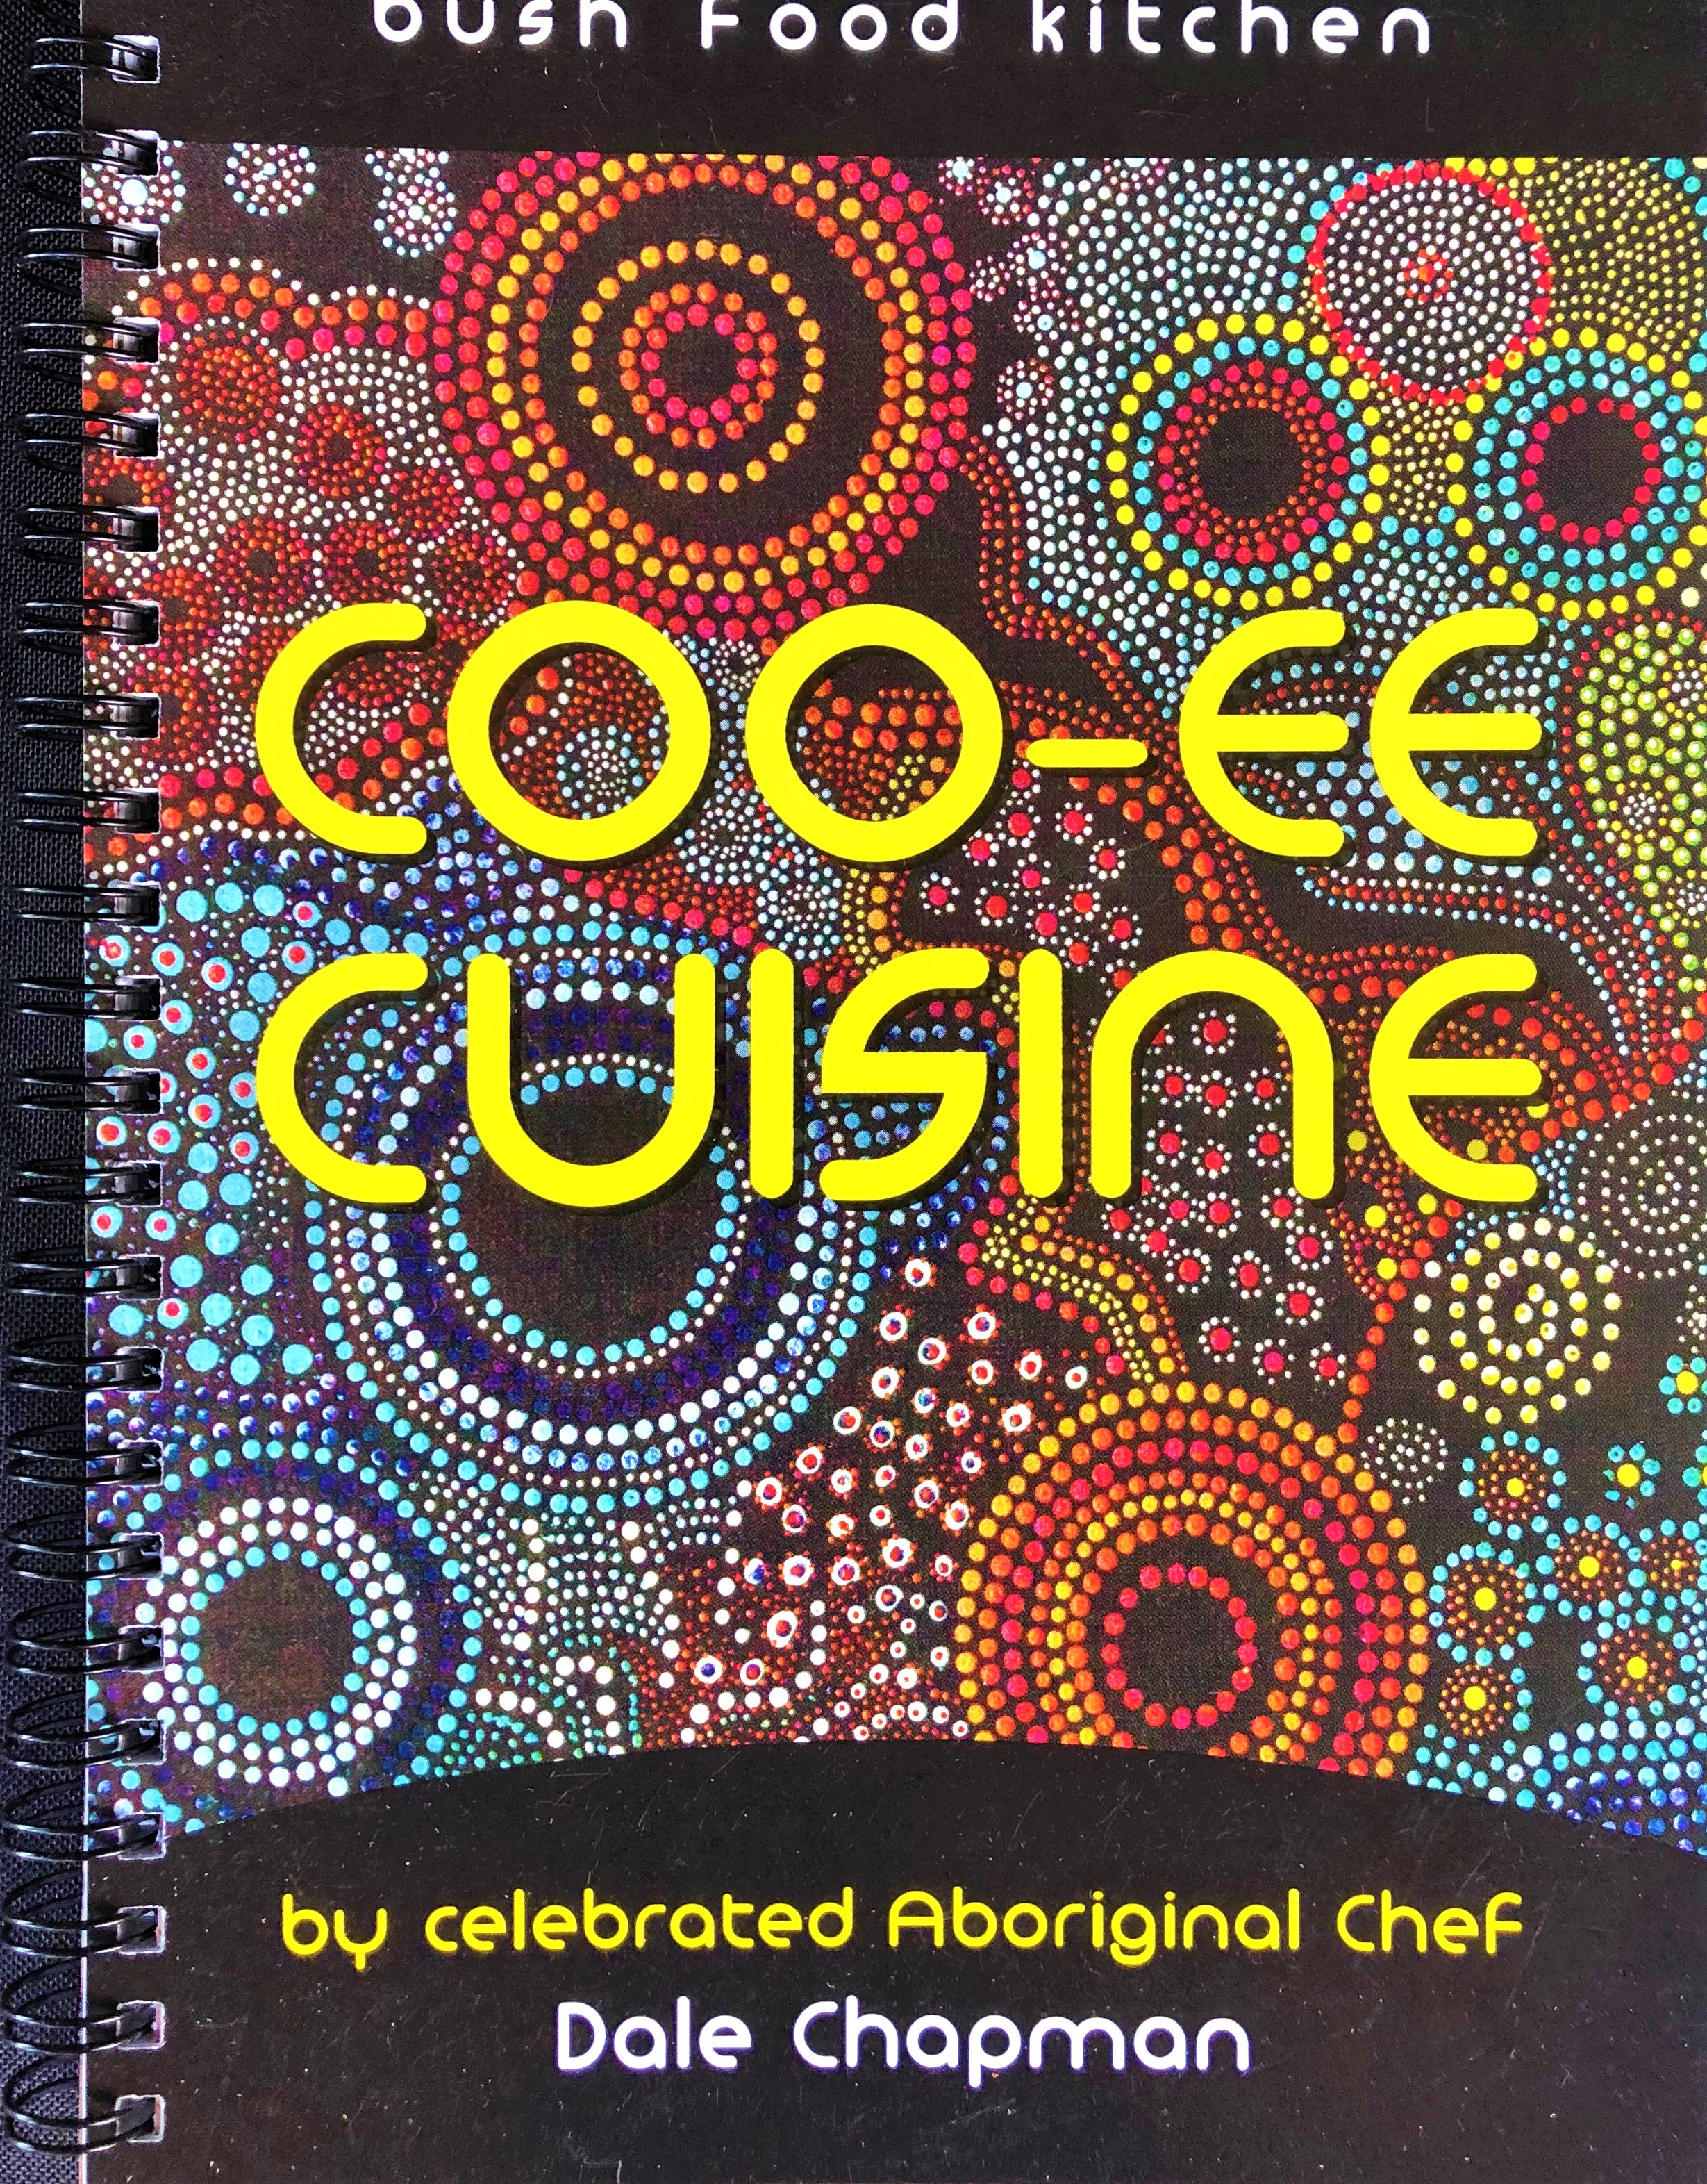 Coo-ee Cuisine Cookbook - Celebrated Aboriginal Chef, Dale Chapman, has produced this clever little cookbook in response to many years of requests for native food recipes. A straight forward collection of tried-and-true family recipes that will teach you how to absorb authentic traditional Aboriginal flavours into your cooking.